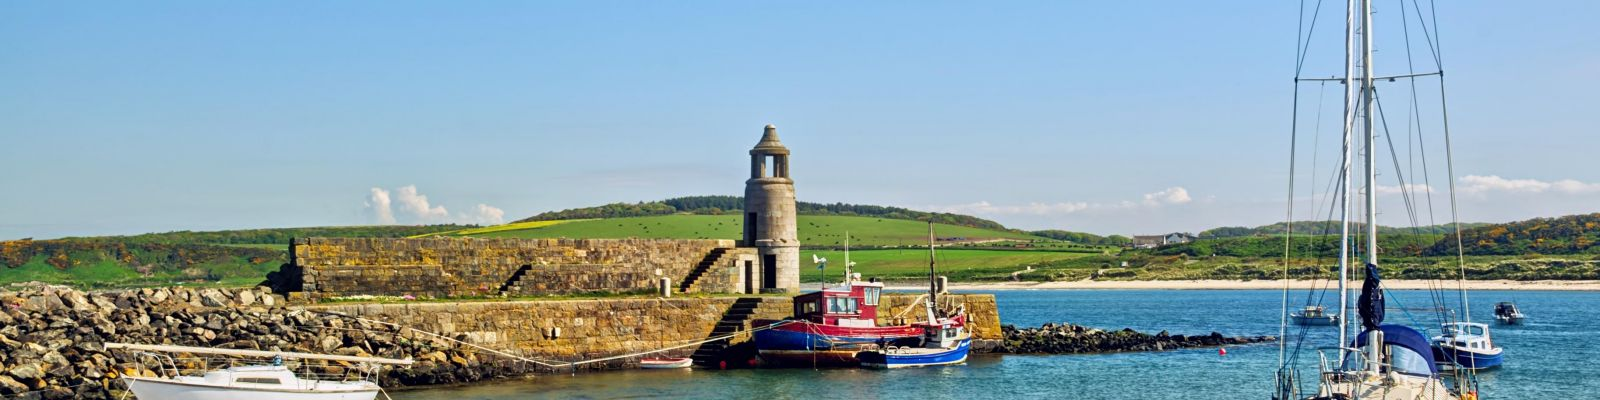 Self catering holiday cottages in dumfries and galloway - Swimming pools in dumfries and galloway ...